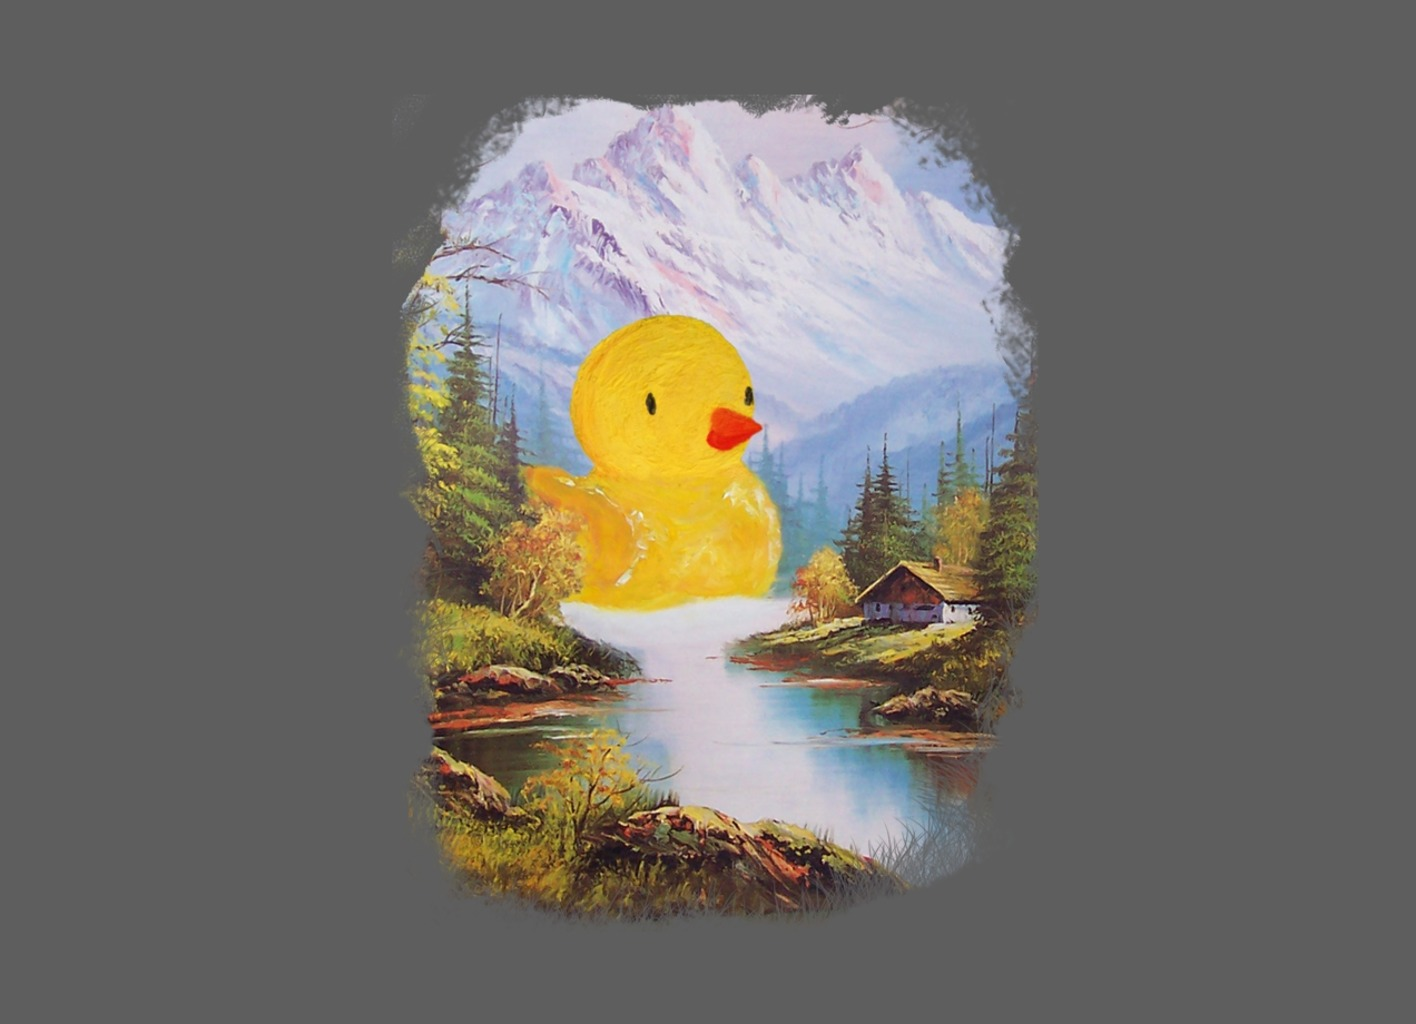 Threadless: So Quack